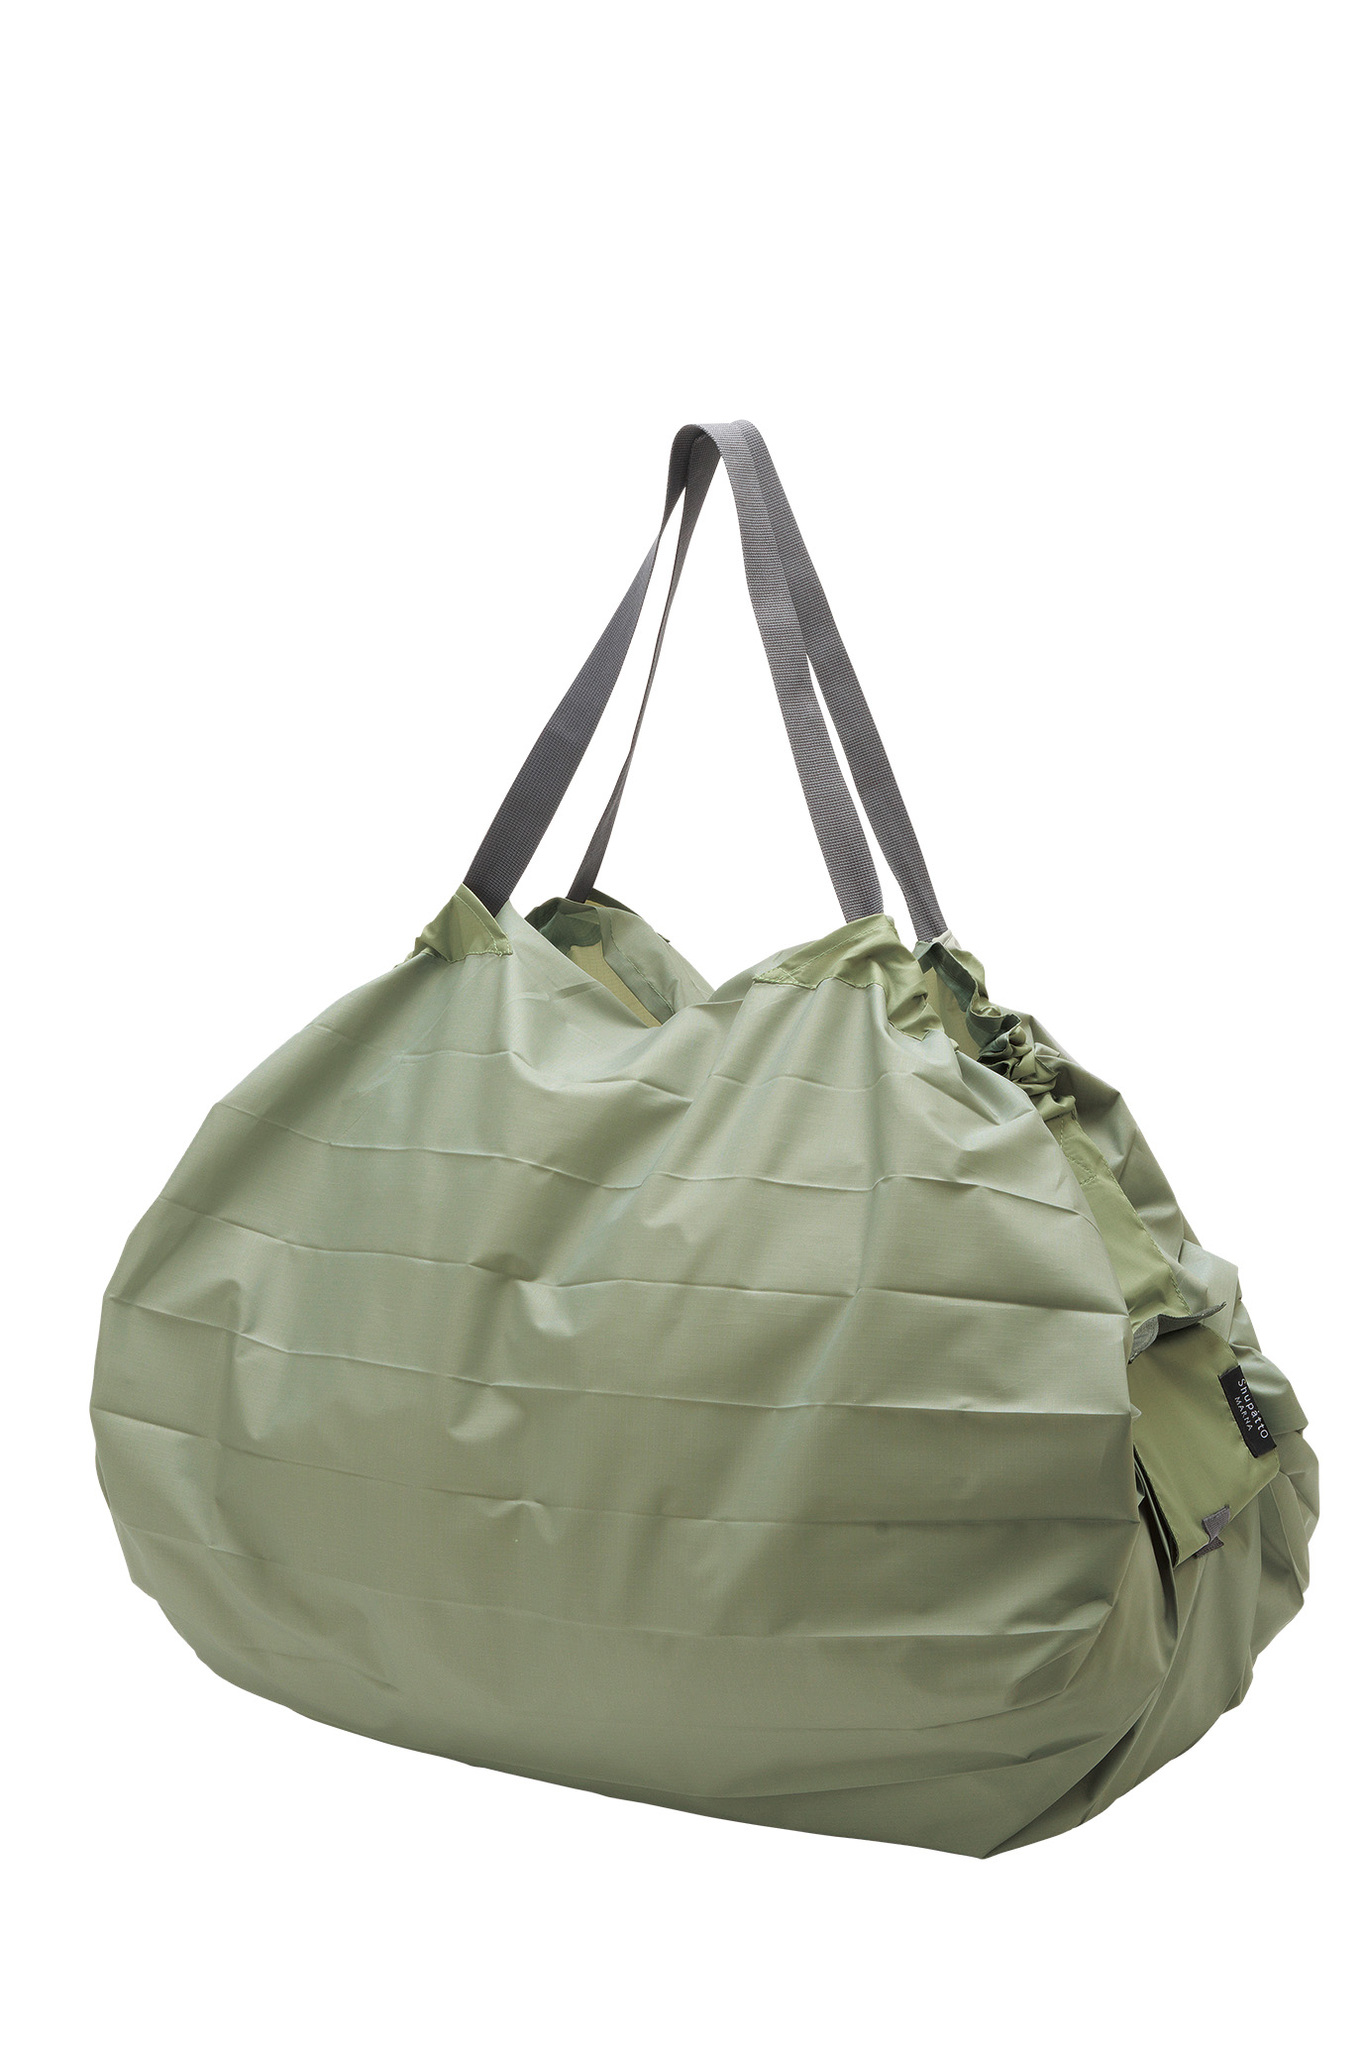 Compact Bag L - MORI - Foldable Shopping Bag One-Pull (patented) Khaki, Polyester